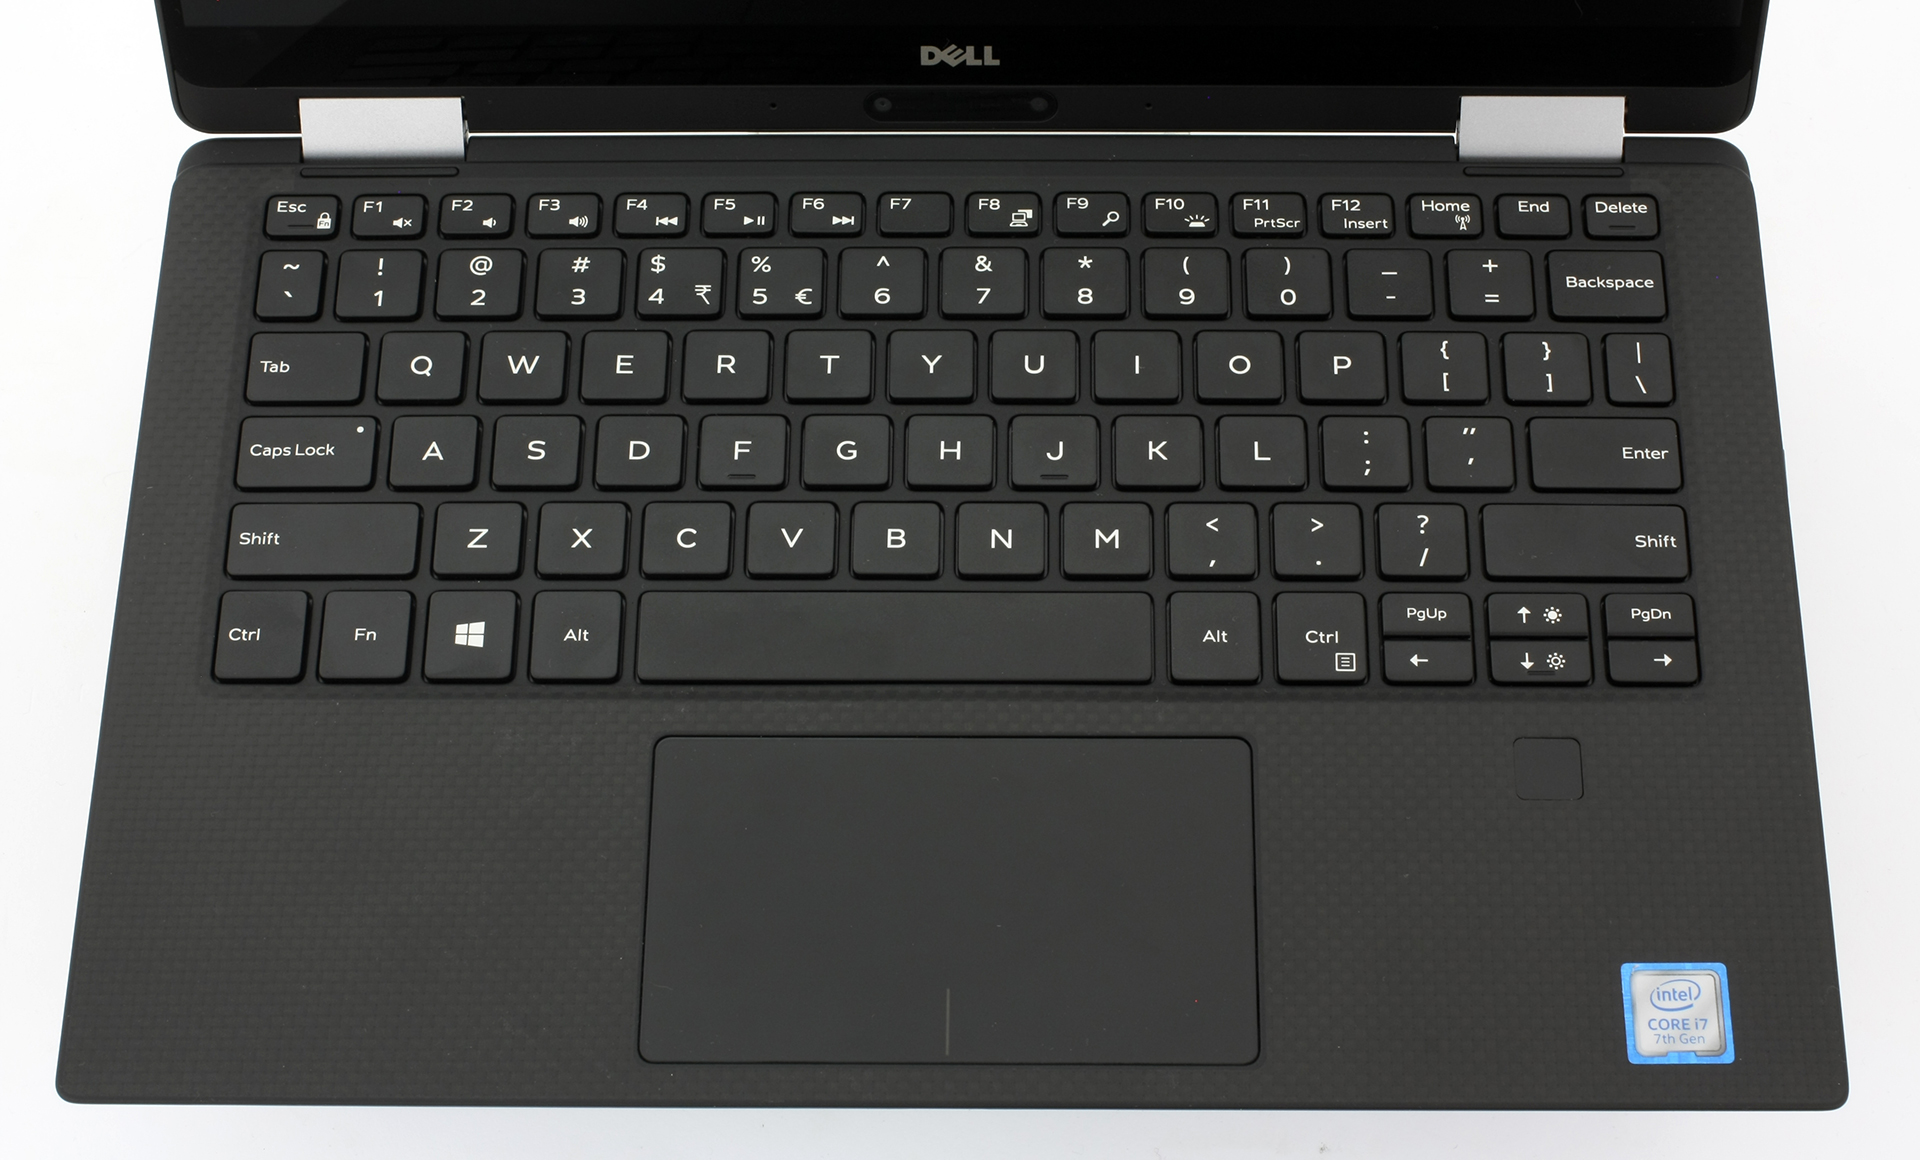 Dell XPS 13 (9365) 2-in-1 review – the good old XPS 13 but